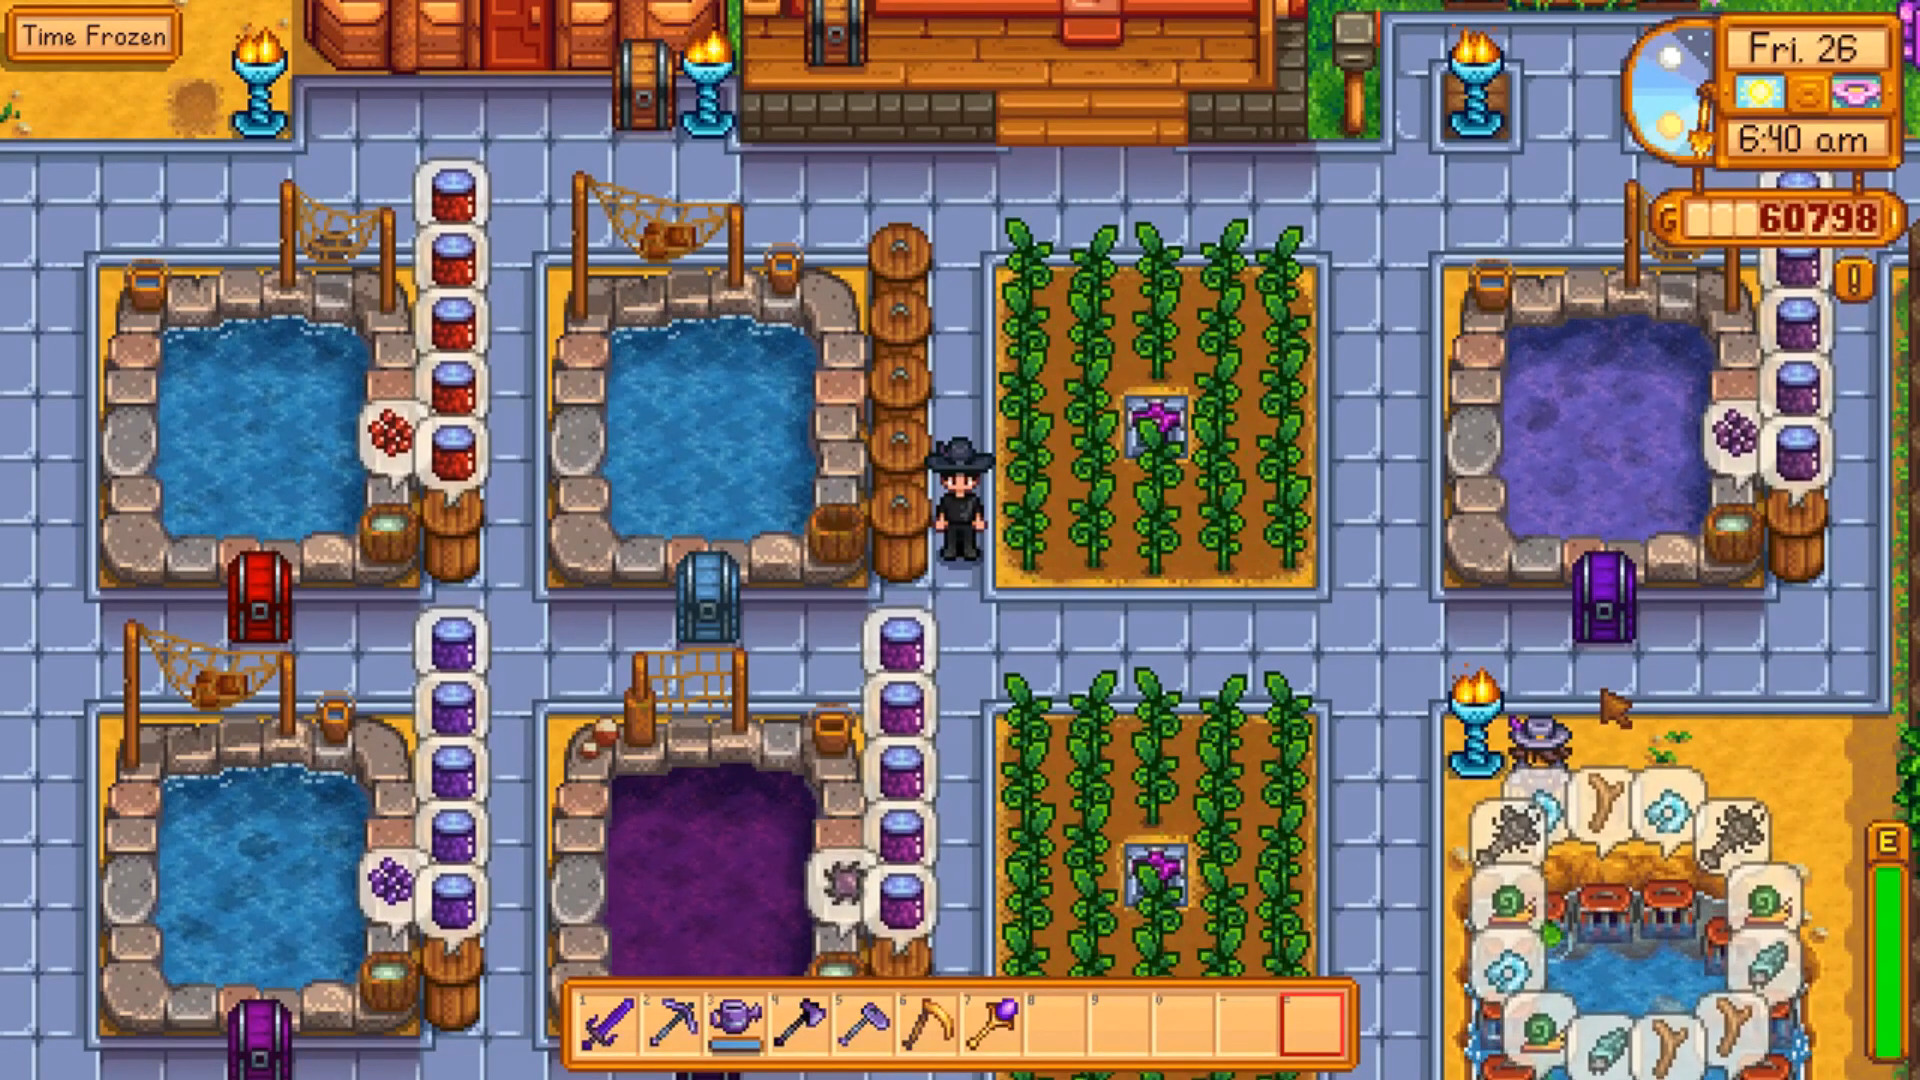 Stardew Valley A Guide To Farming Your Fish Ponds And The Best Fish To Cultivate Happy Gamer